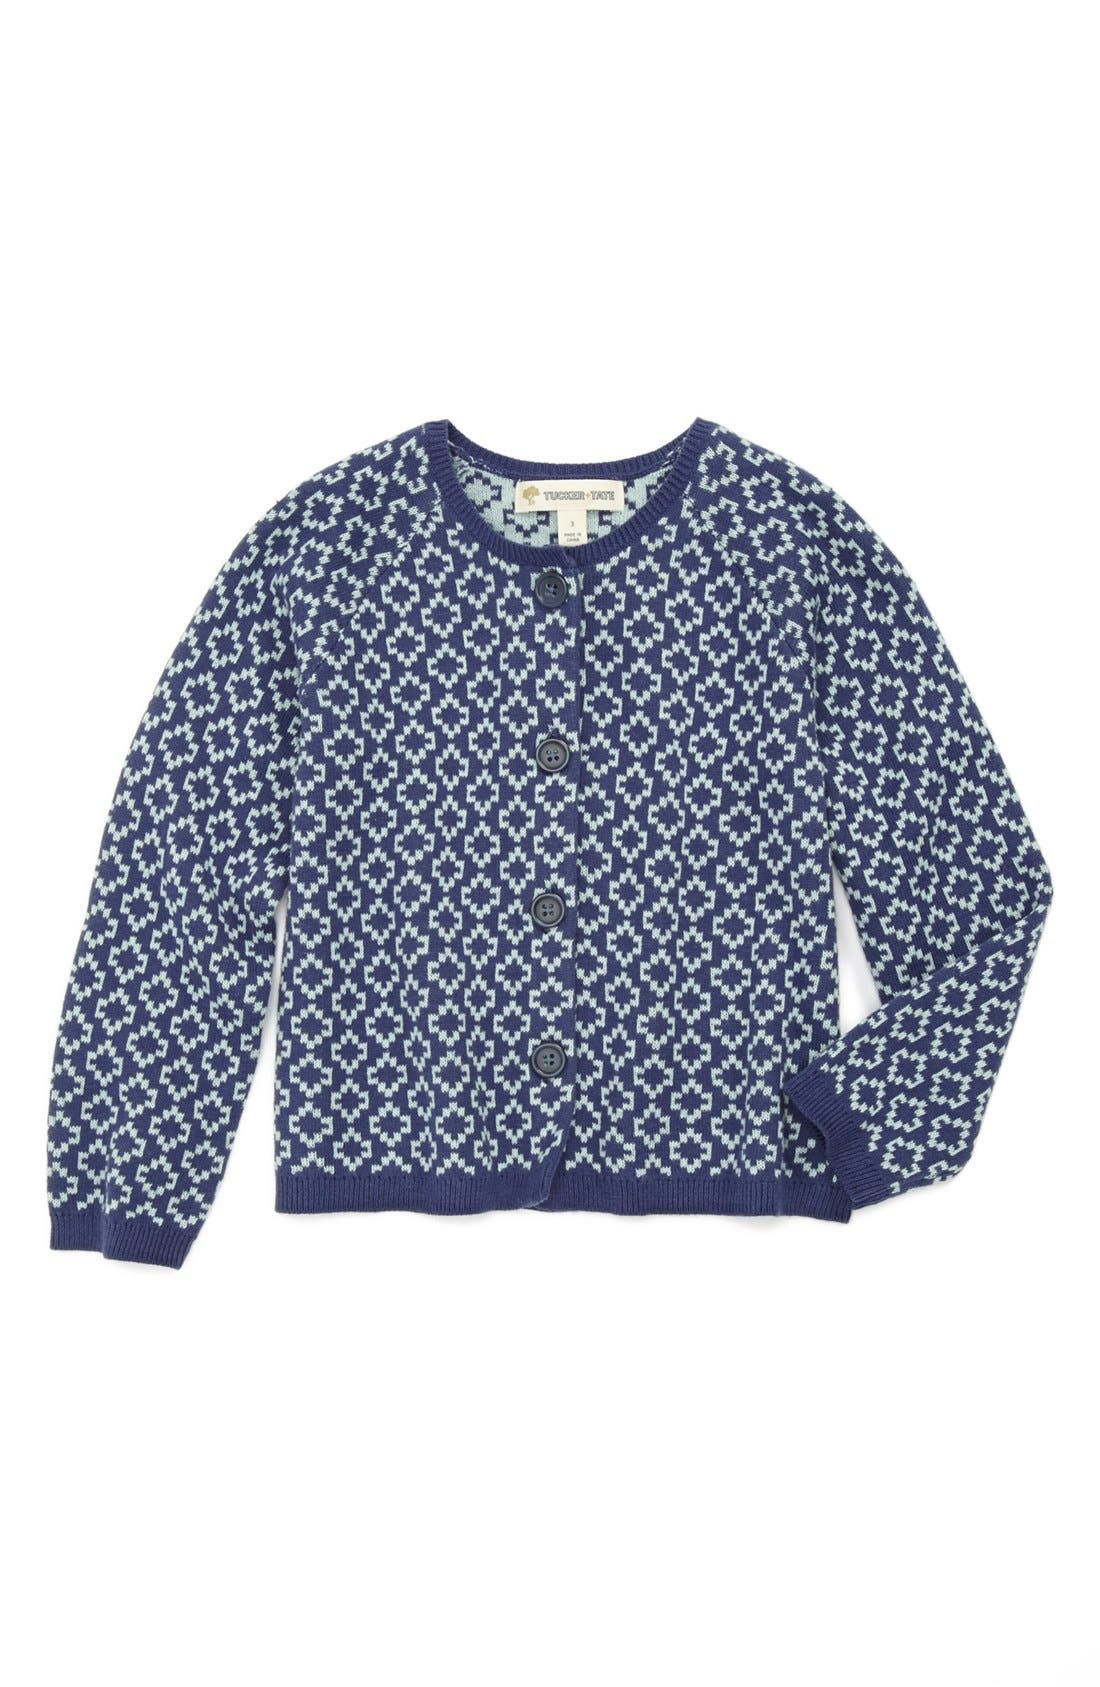 Main Image - Tucker + Tate 'Amber' Cardigan (Toddler Girls)